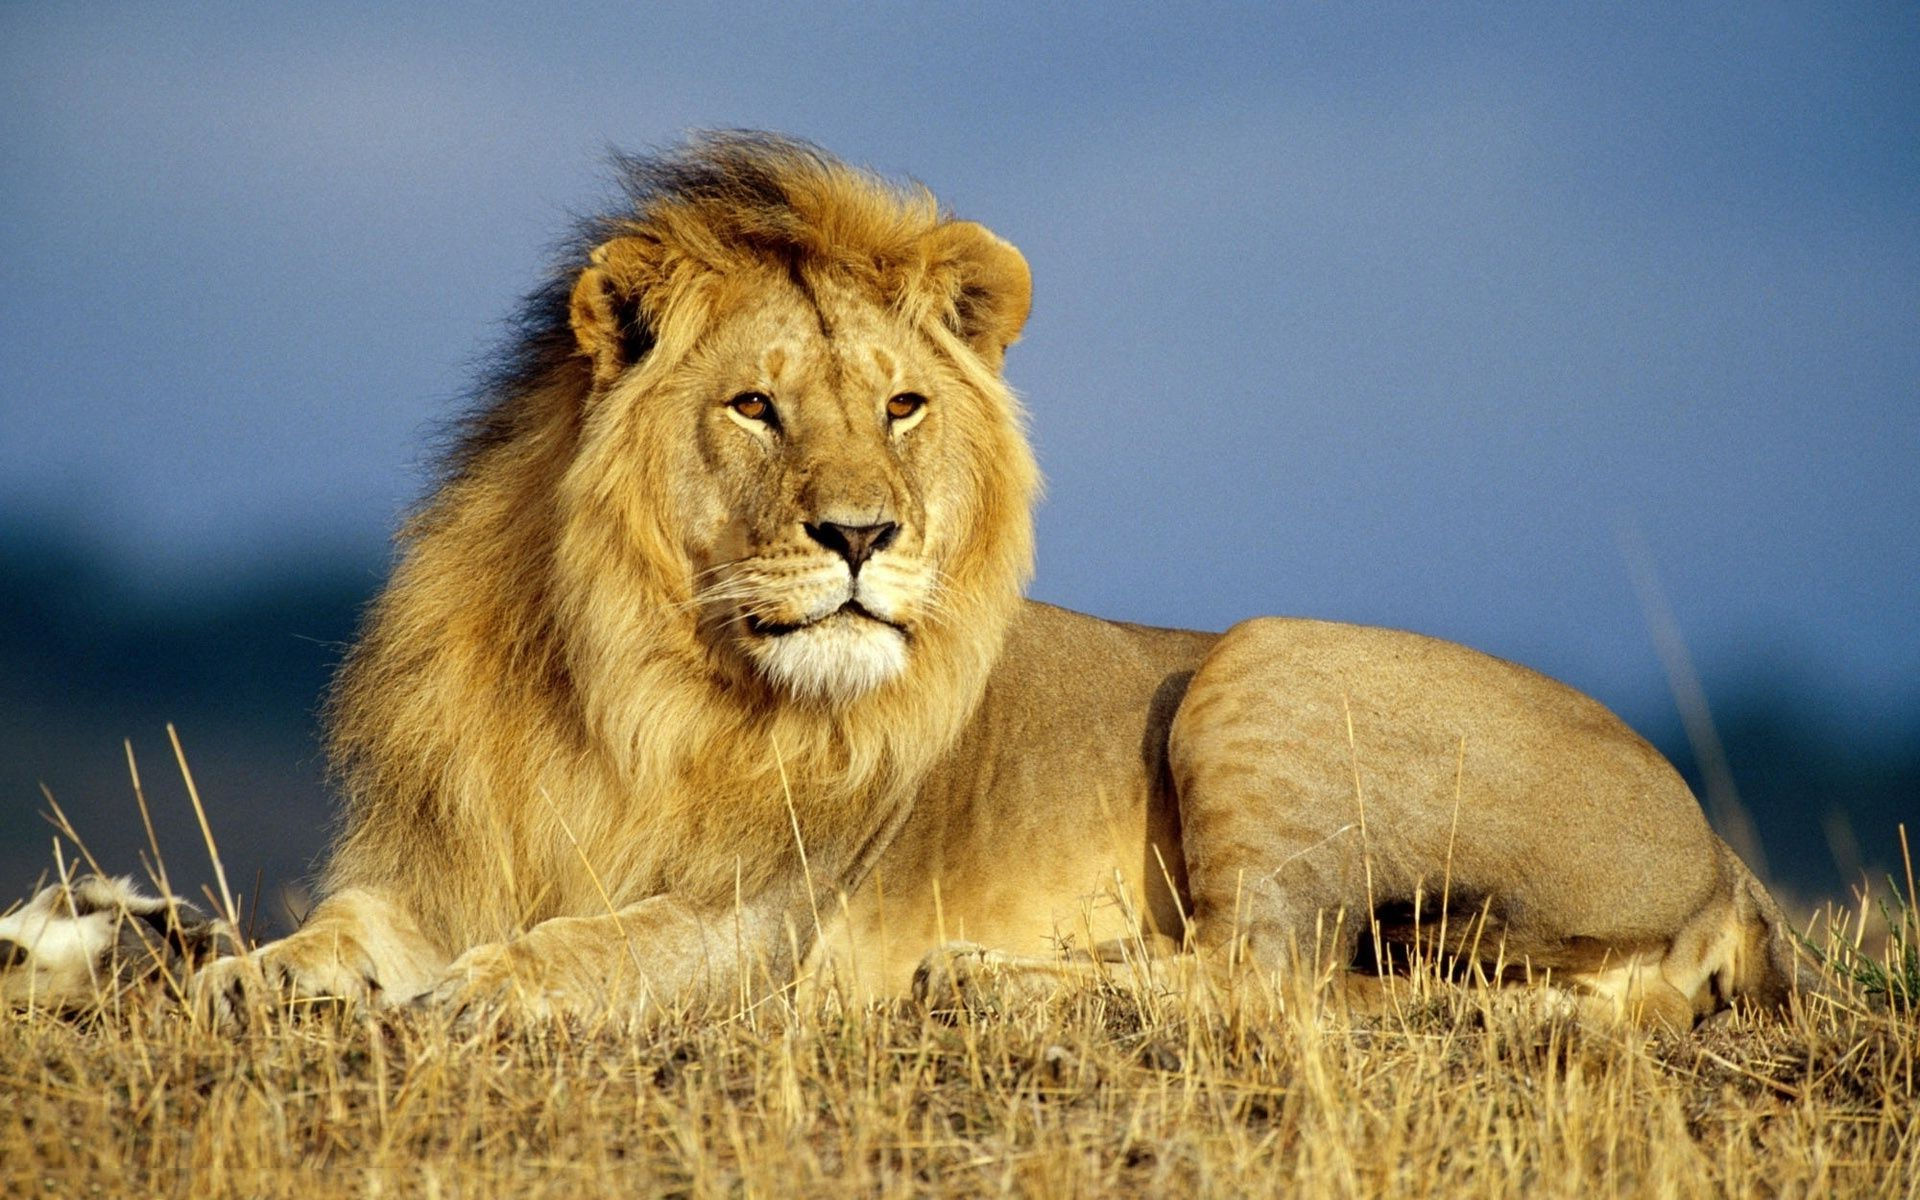 Lion in africa wallpaper